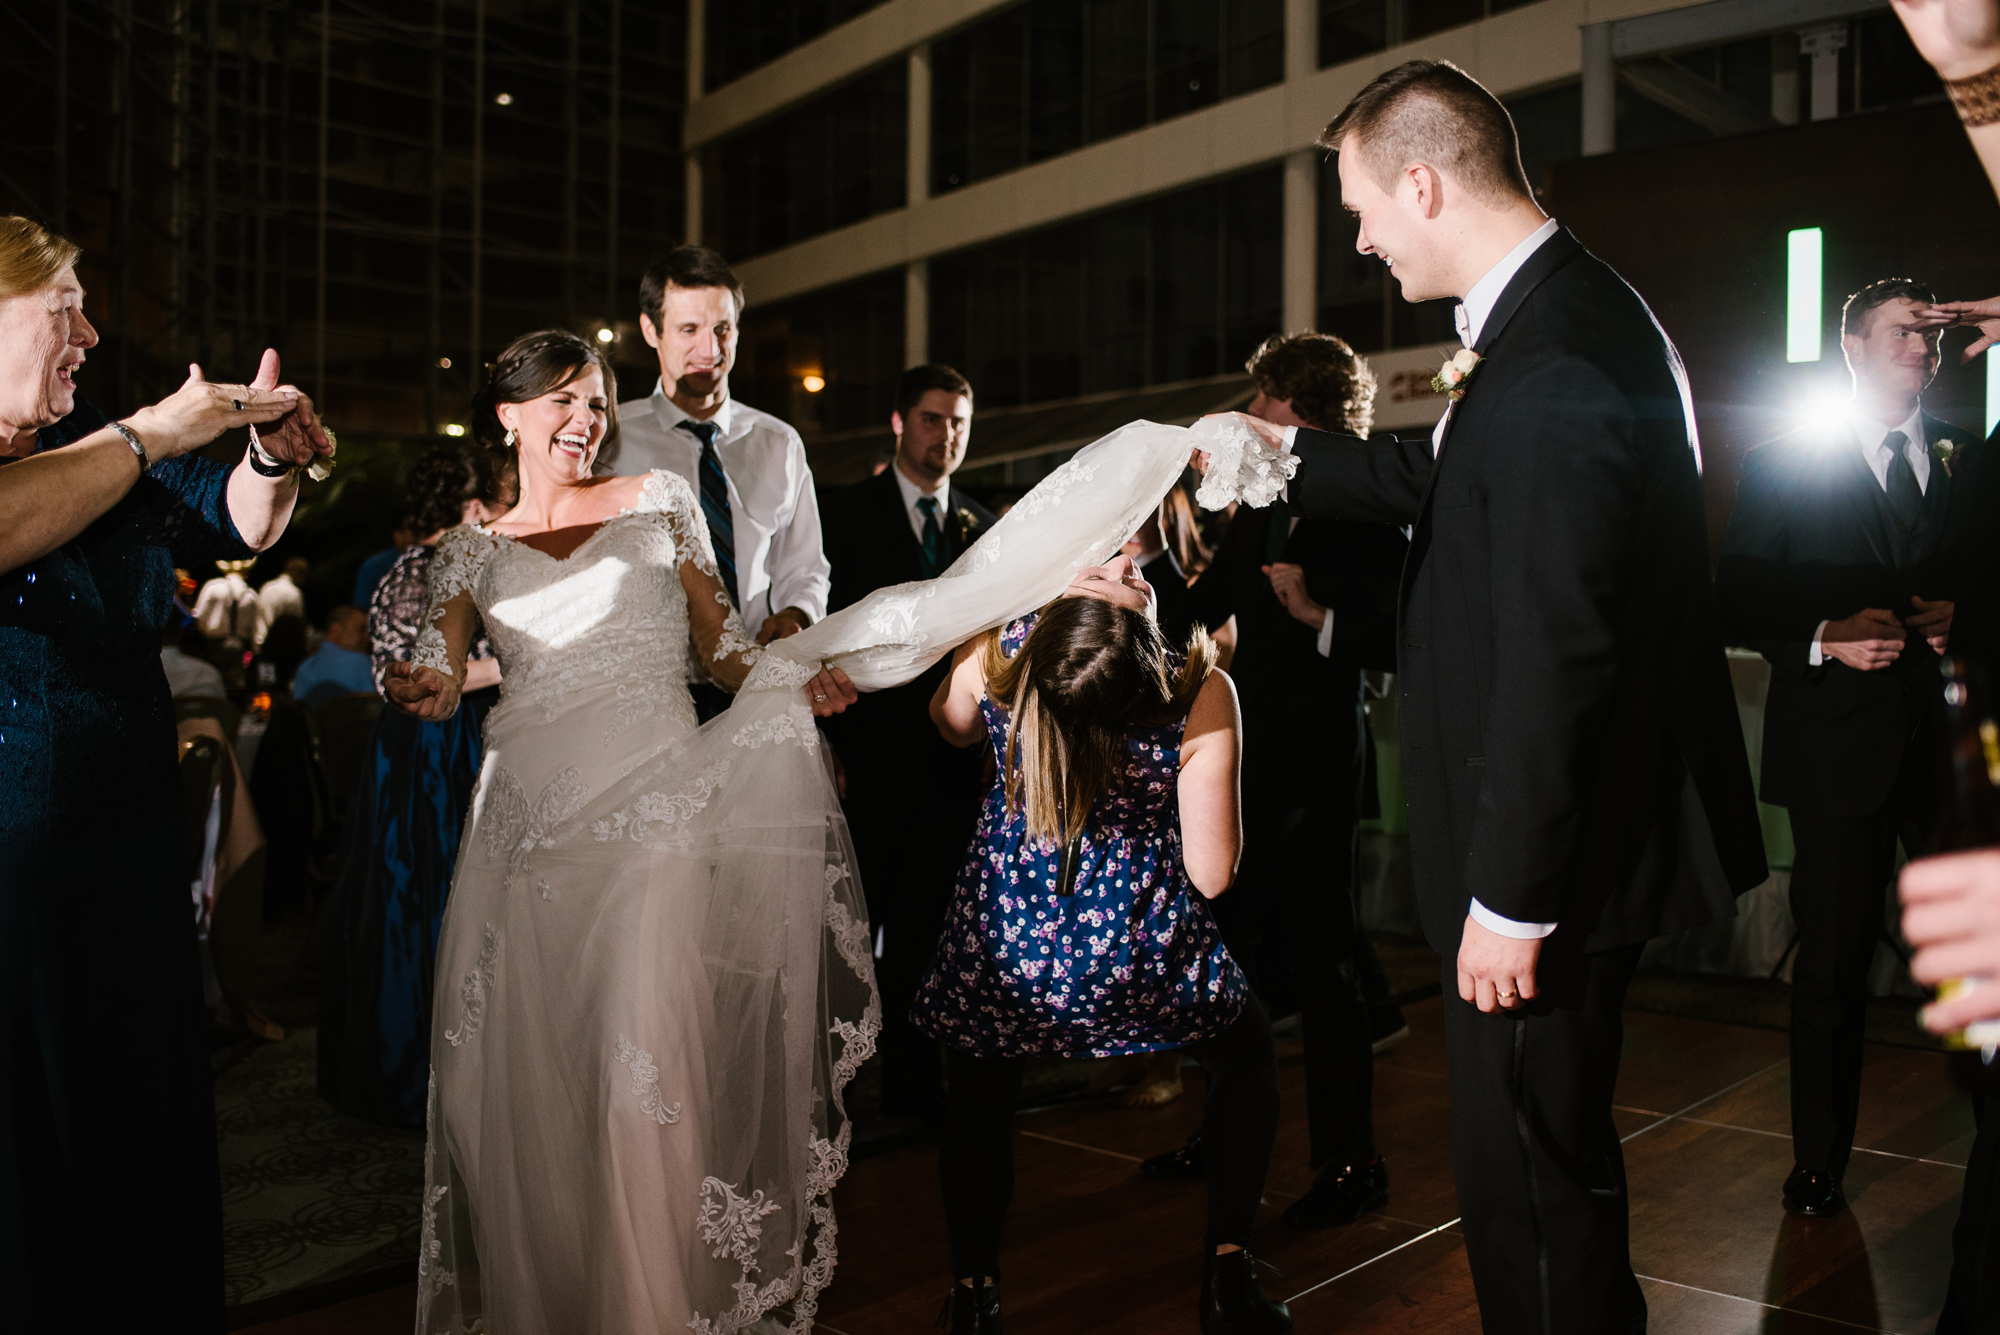 south-bend-indiana-double-tree-wedding-dancing-photos-sydney-marie (6).jpg